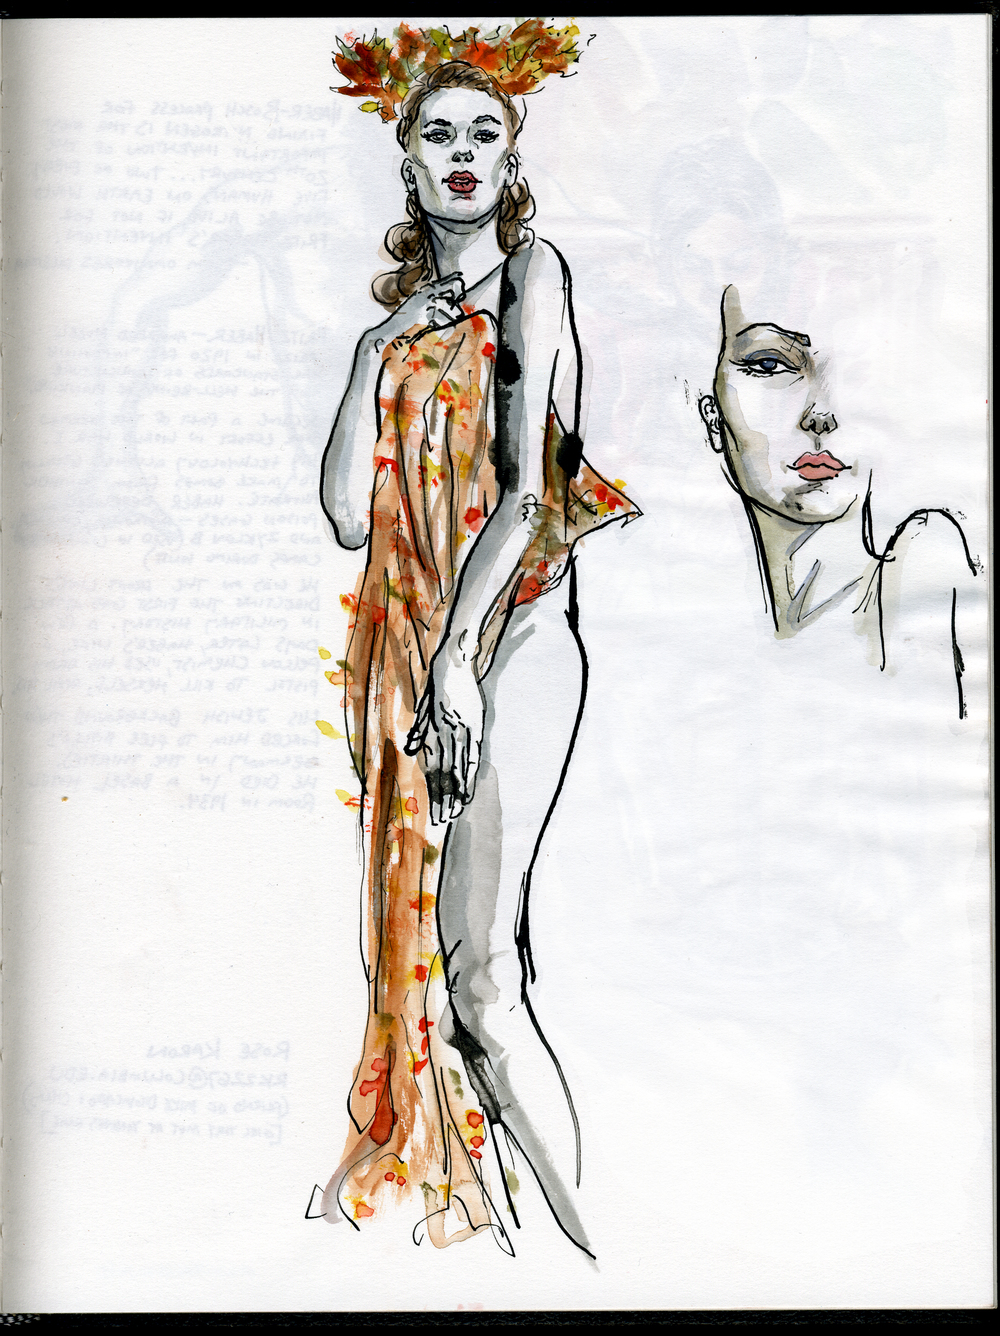 Sketchbook_Apr08_081.jpg